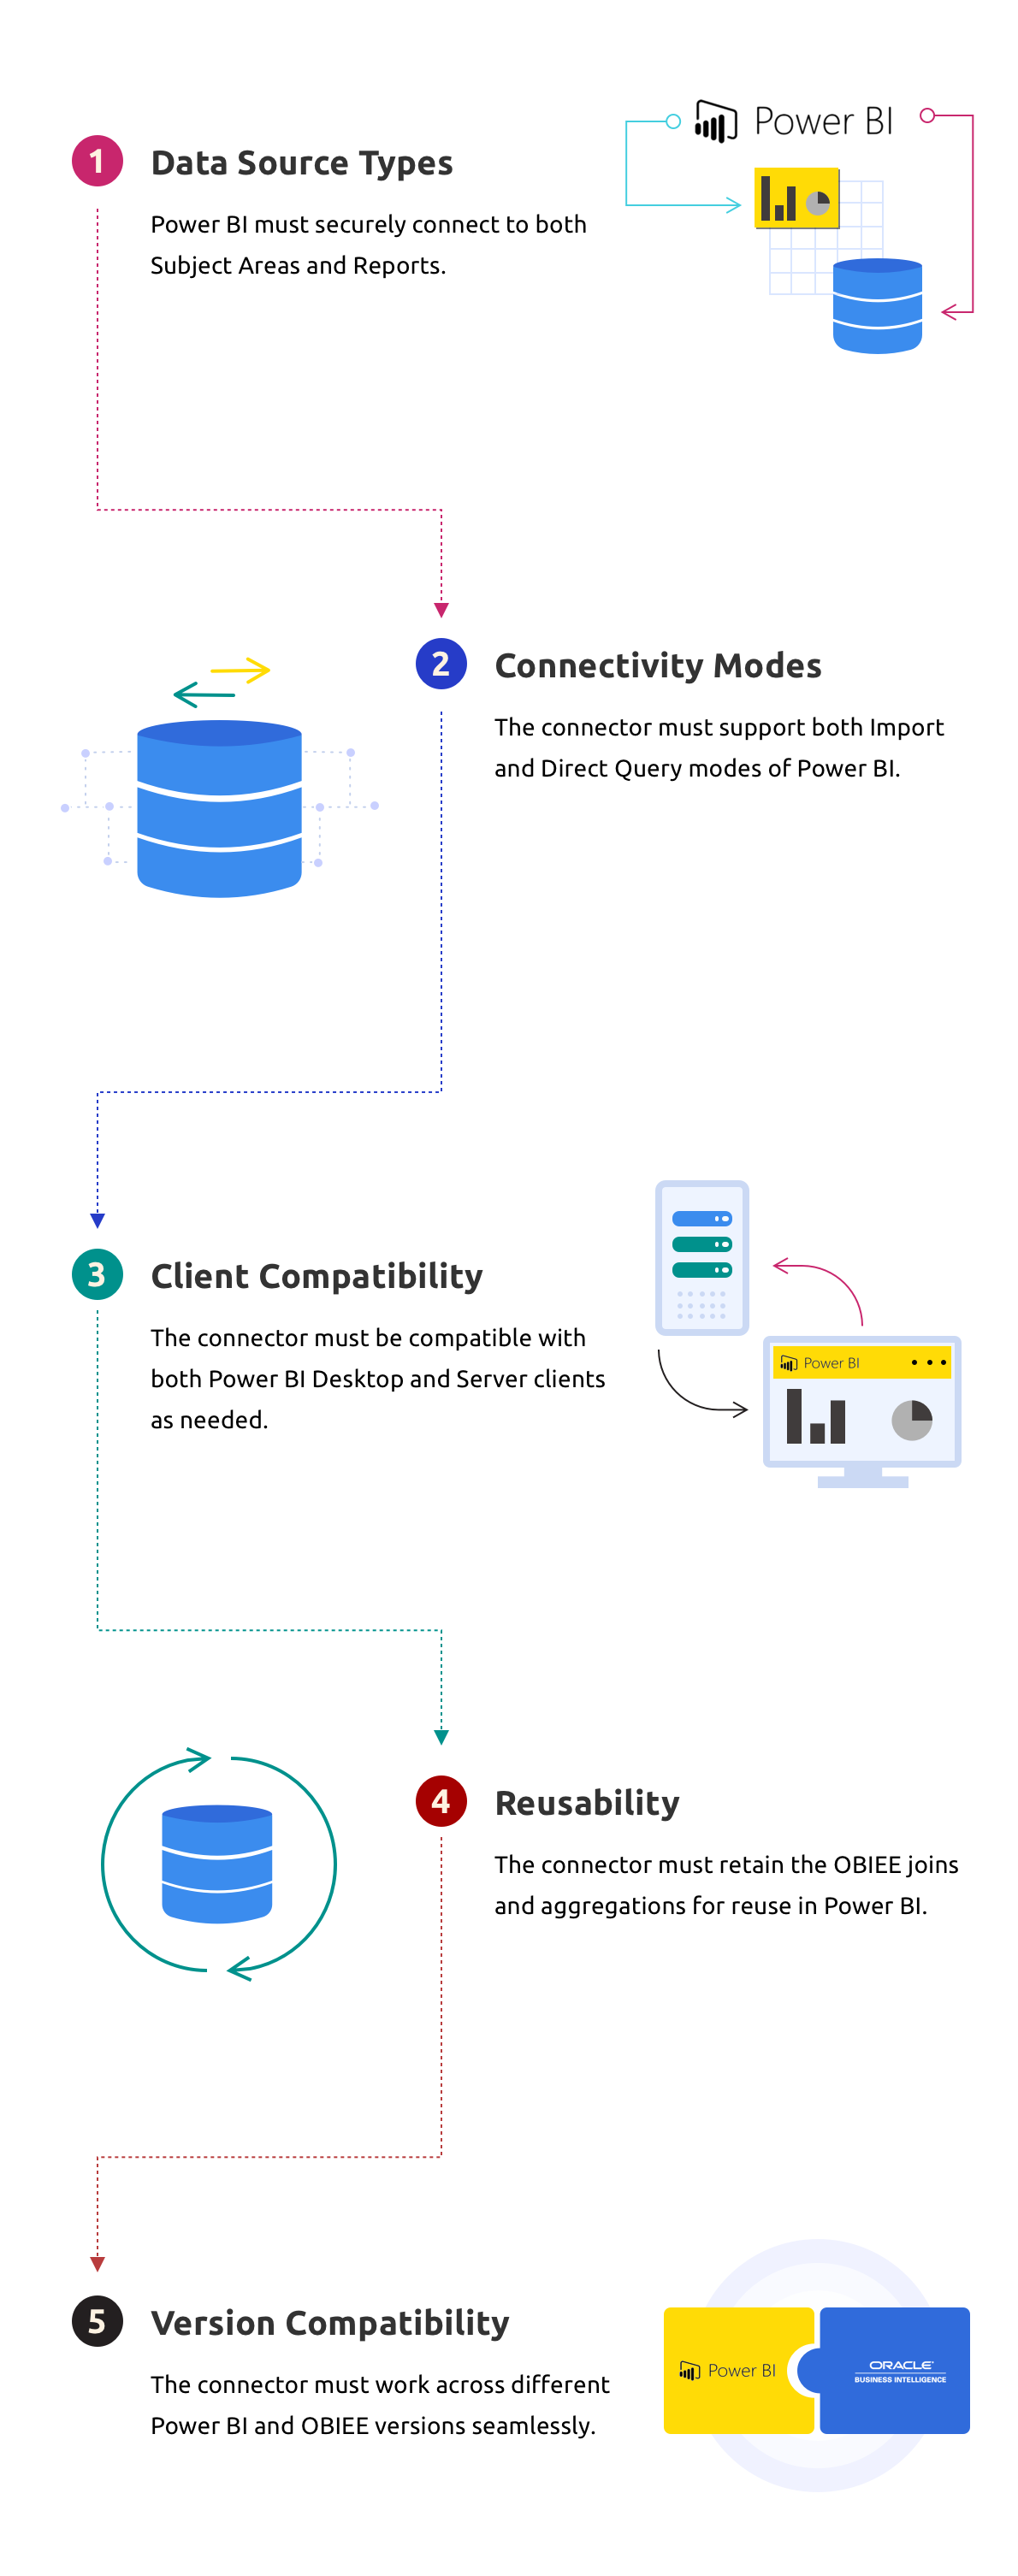 5 Must haves for a Power BI to OBIEE Connector